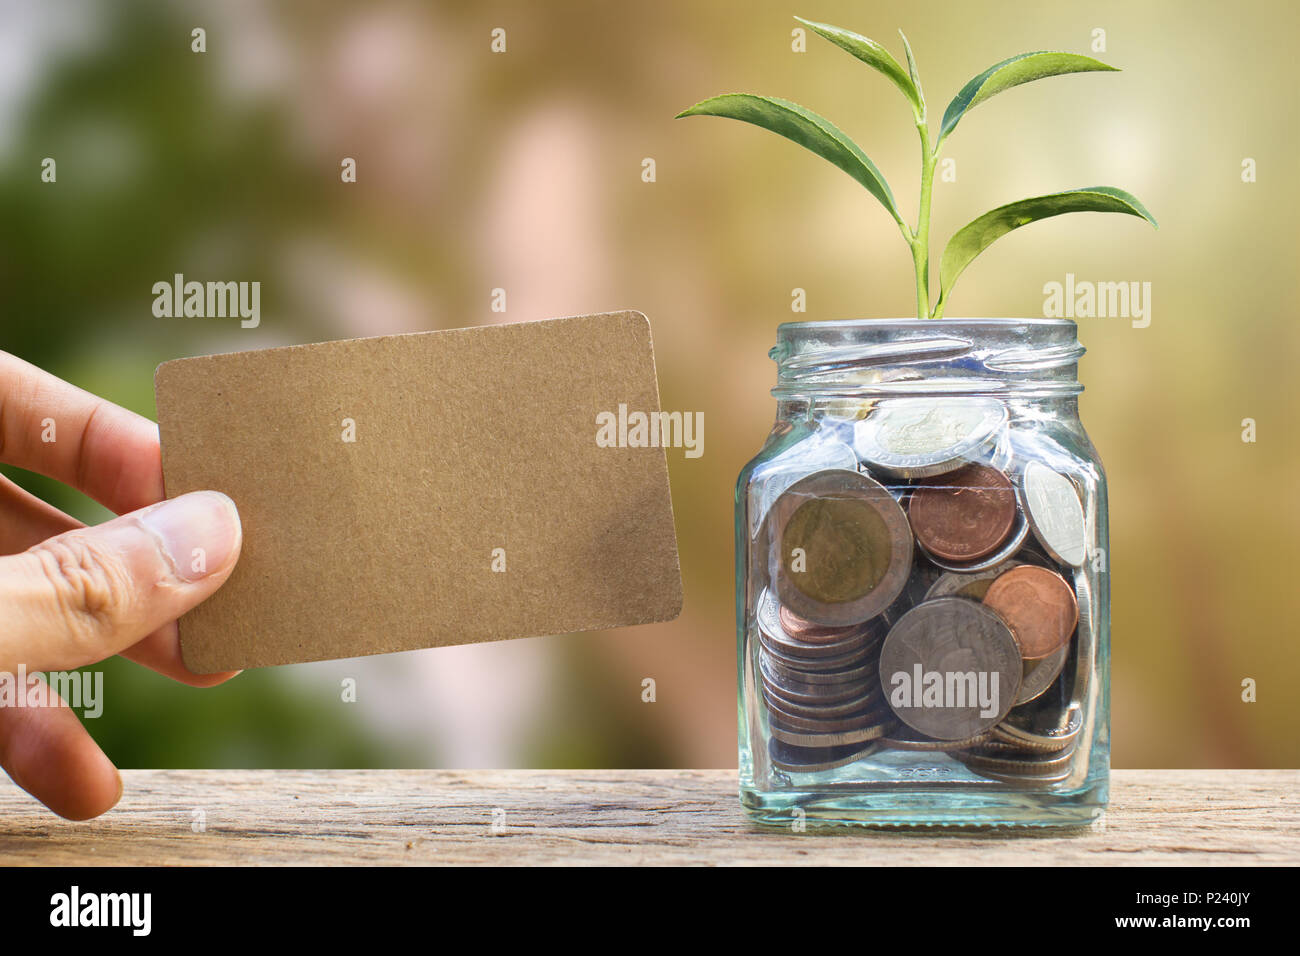 Saving and invest money concept. Conceptual hand holding brown card near the glass jar on nature background. Business investment growth concept. Inves - Stock Image